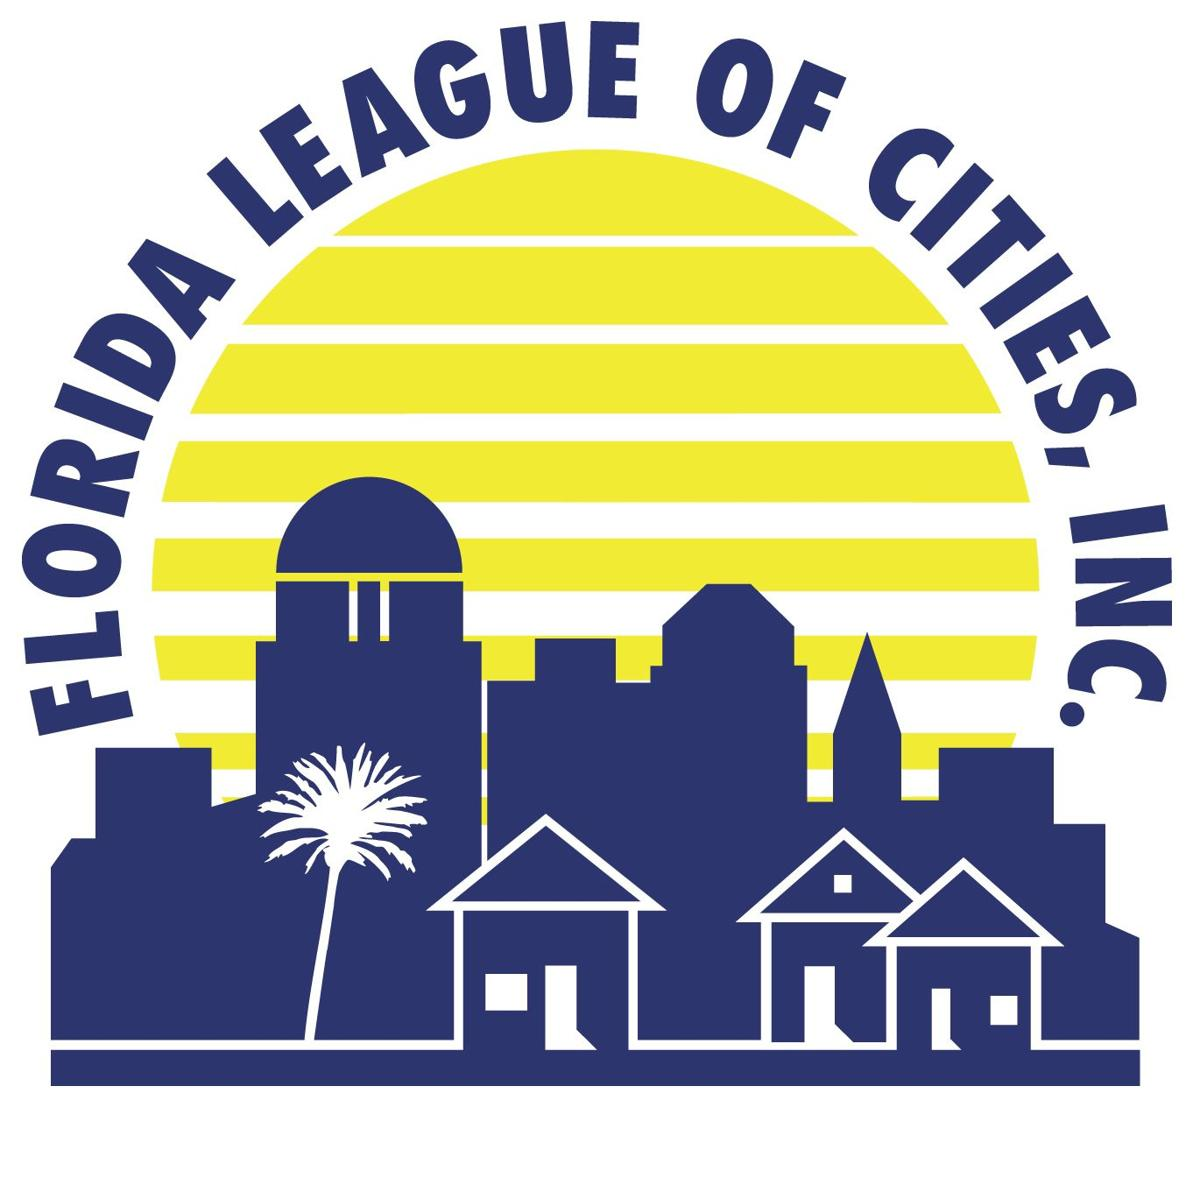 League of Cities takes aim at Florida crisis in water quality and supply